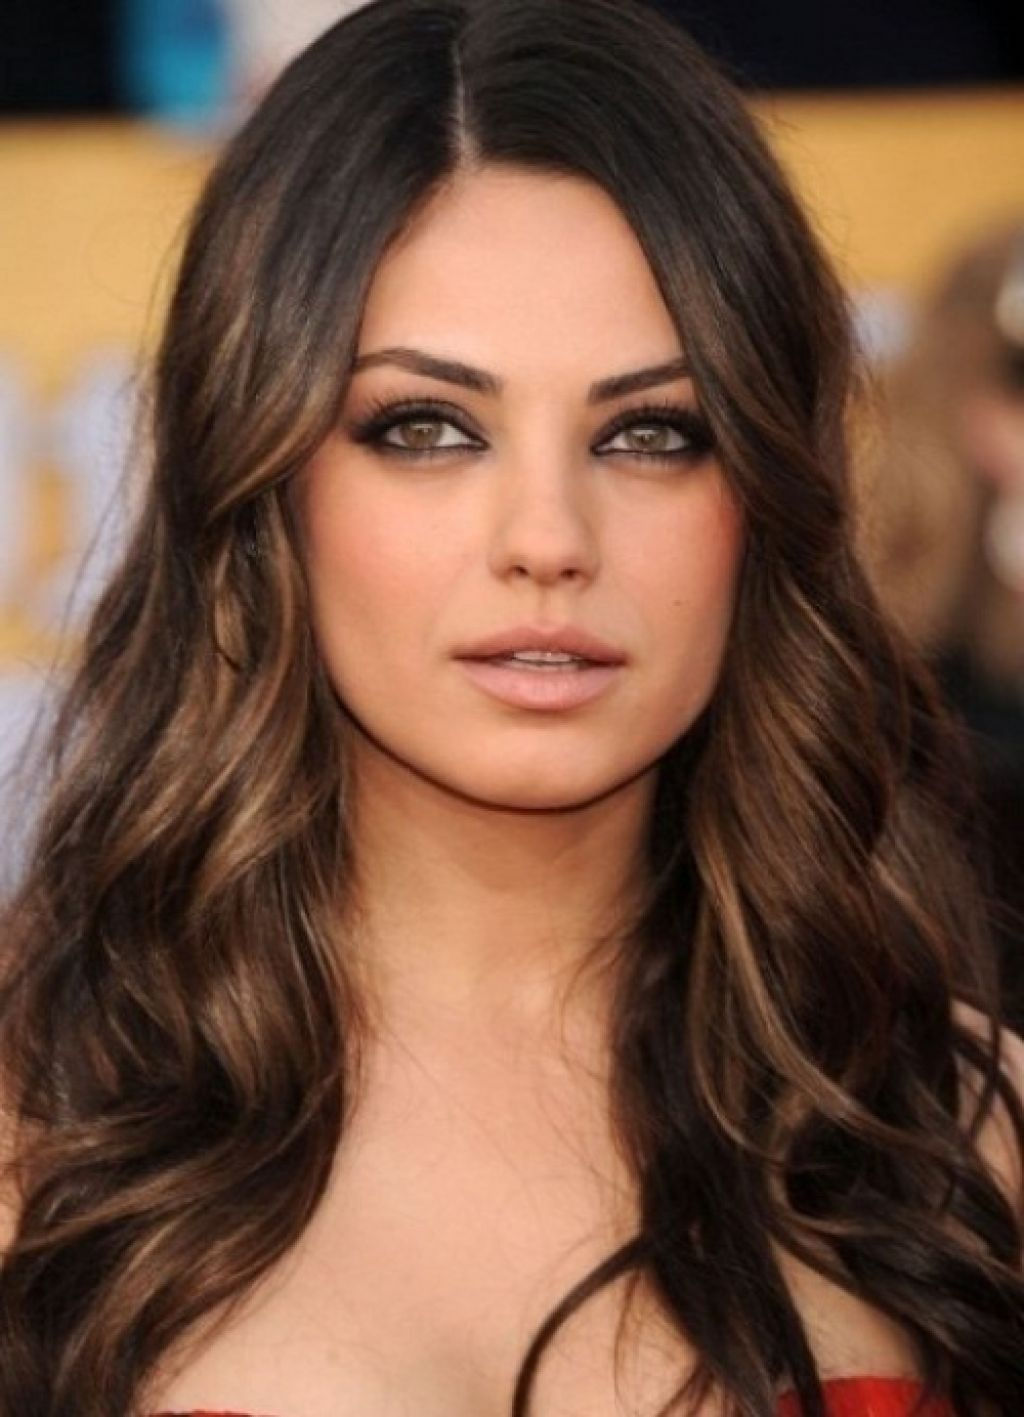 Light Skin Hair Color Best Rated Home Hair Color Check More At